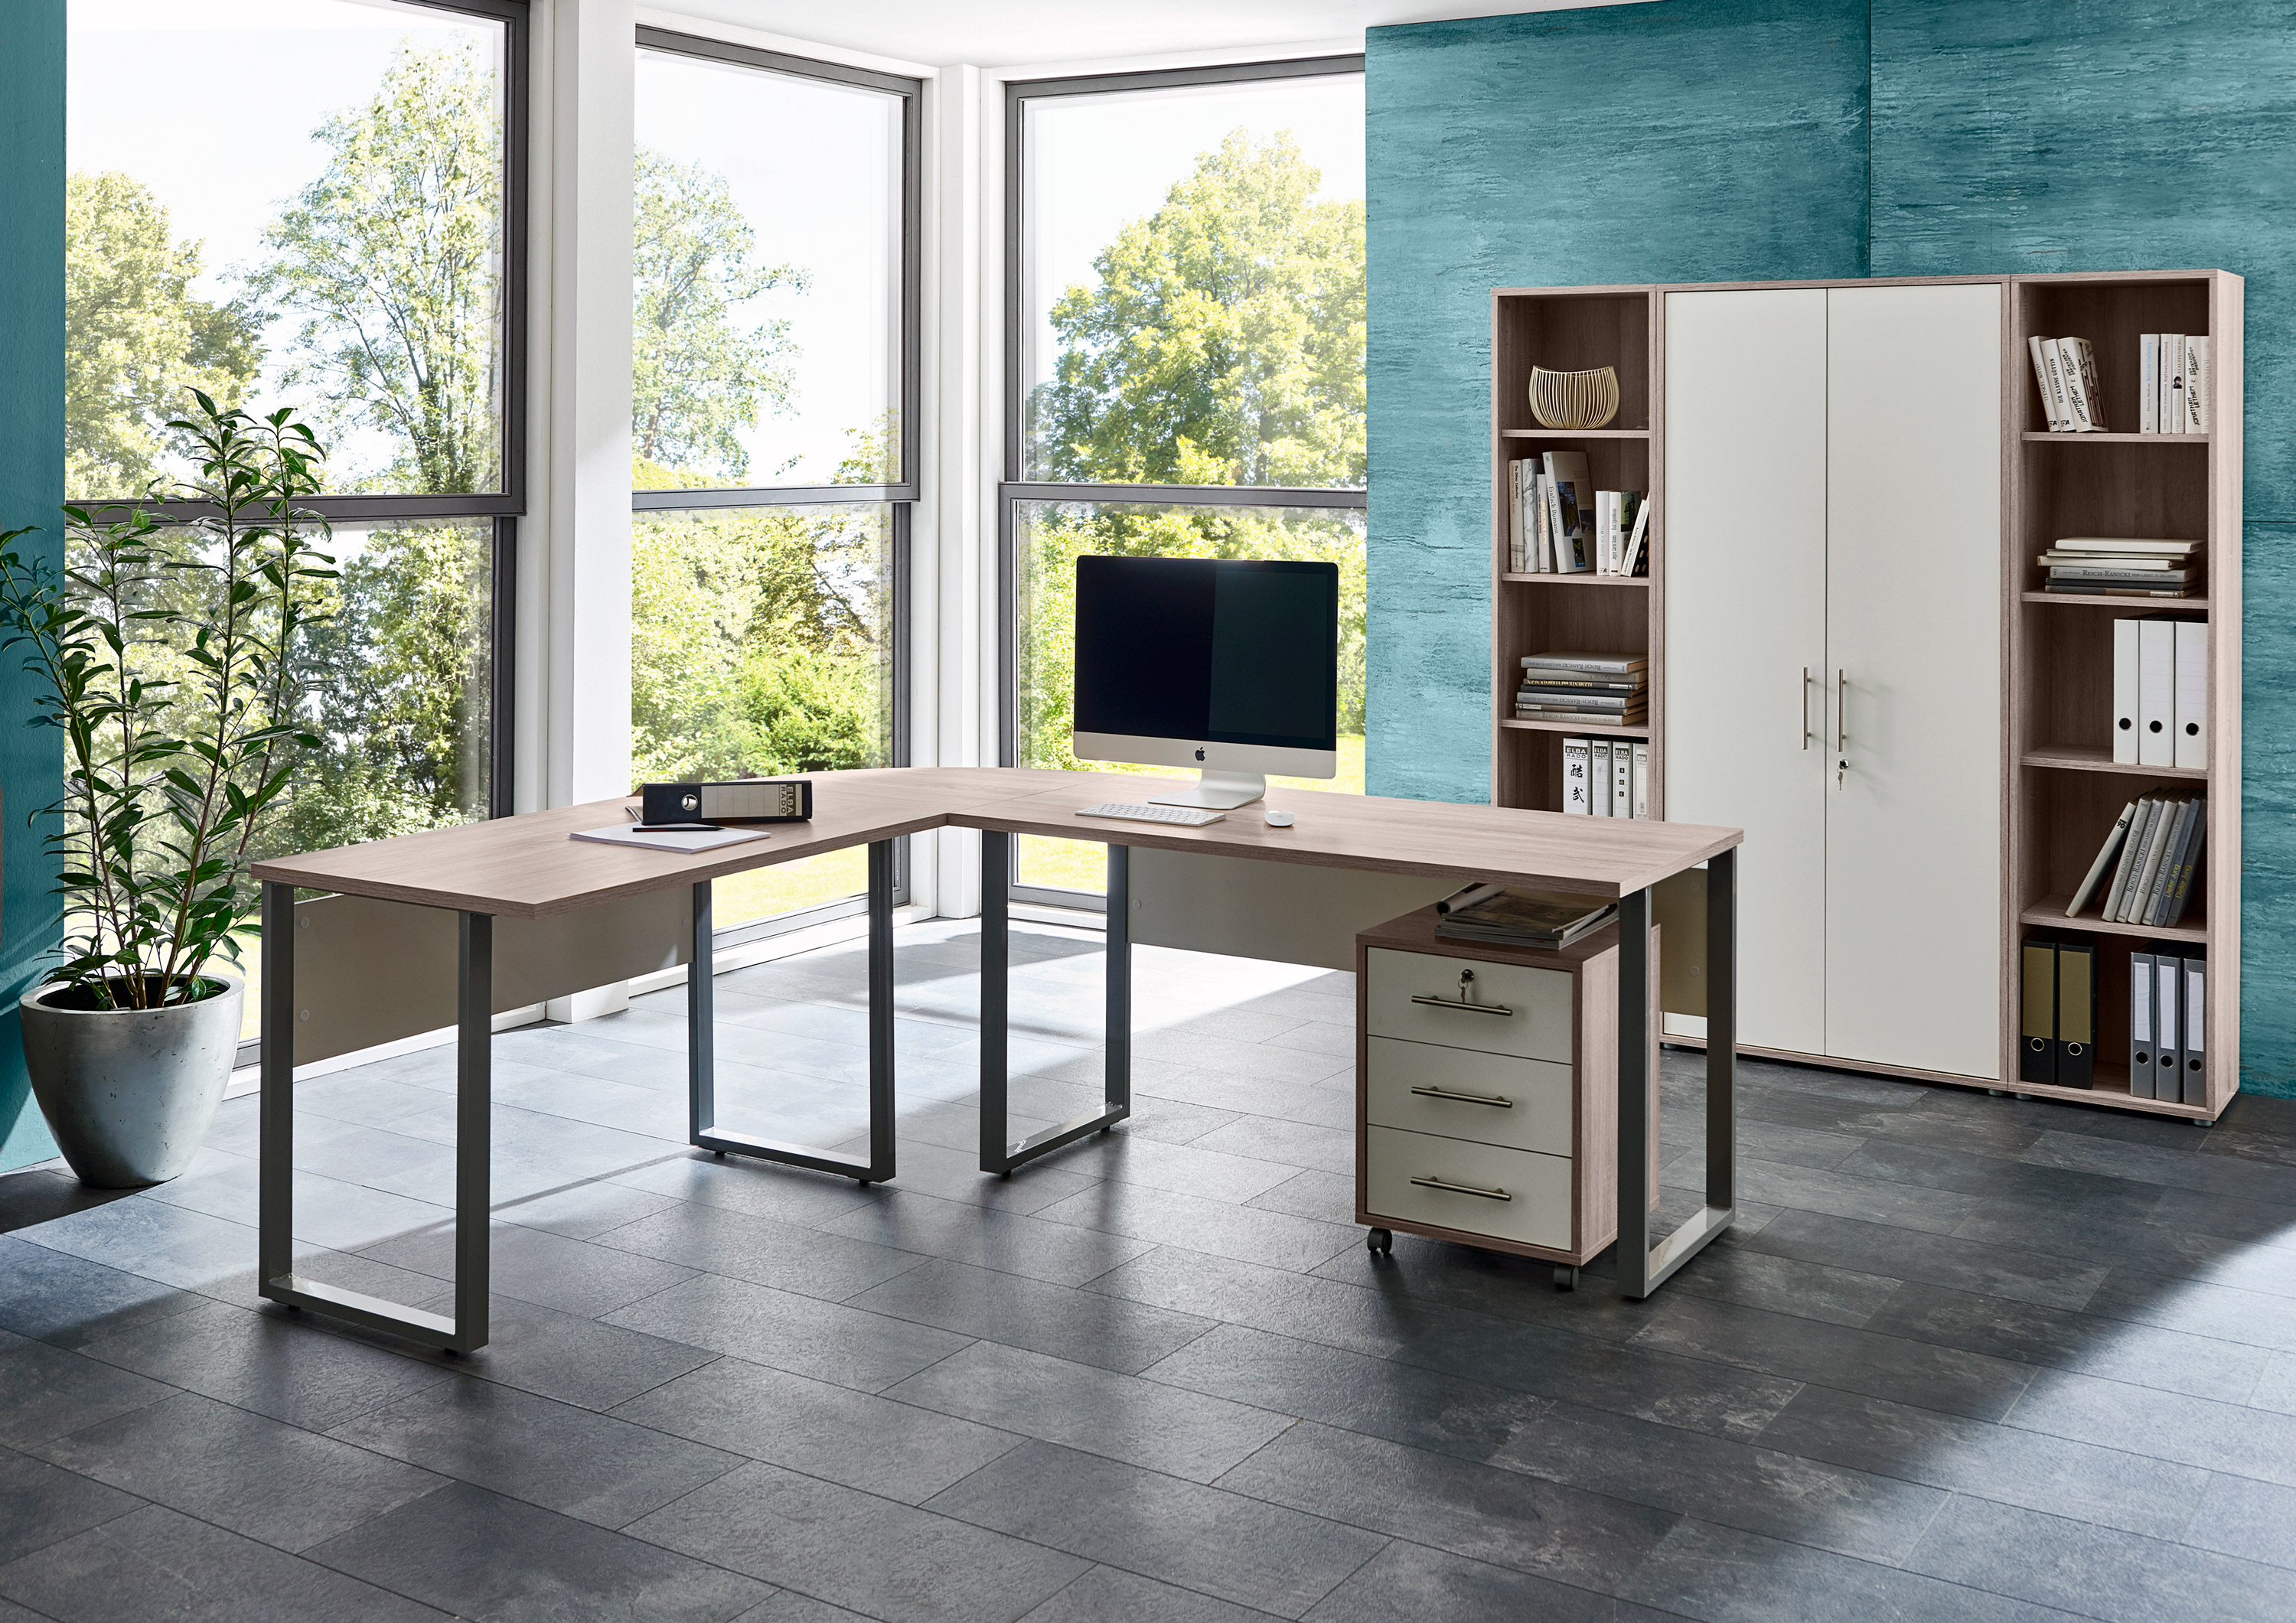 arbeitszimmer b ro office edition in sandeiche wei set 3 moebel dich. Black Bedroom Furniture Sets. Home Design Ideas